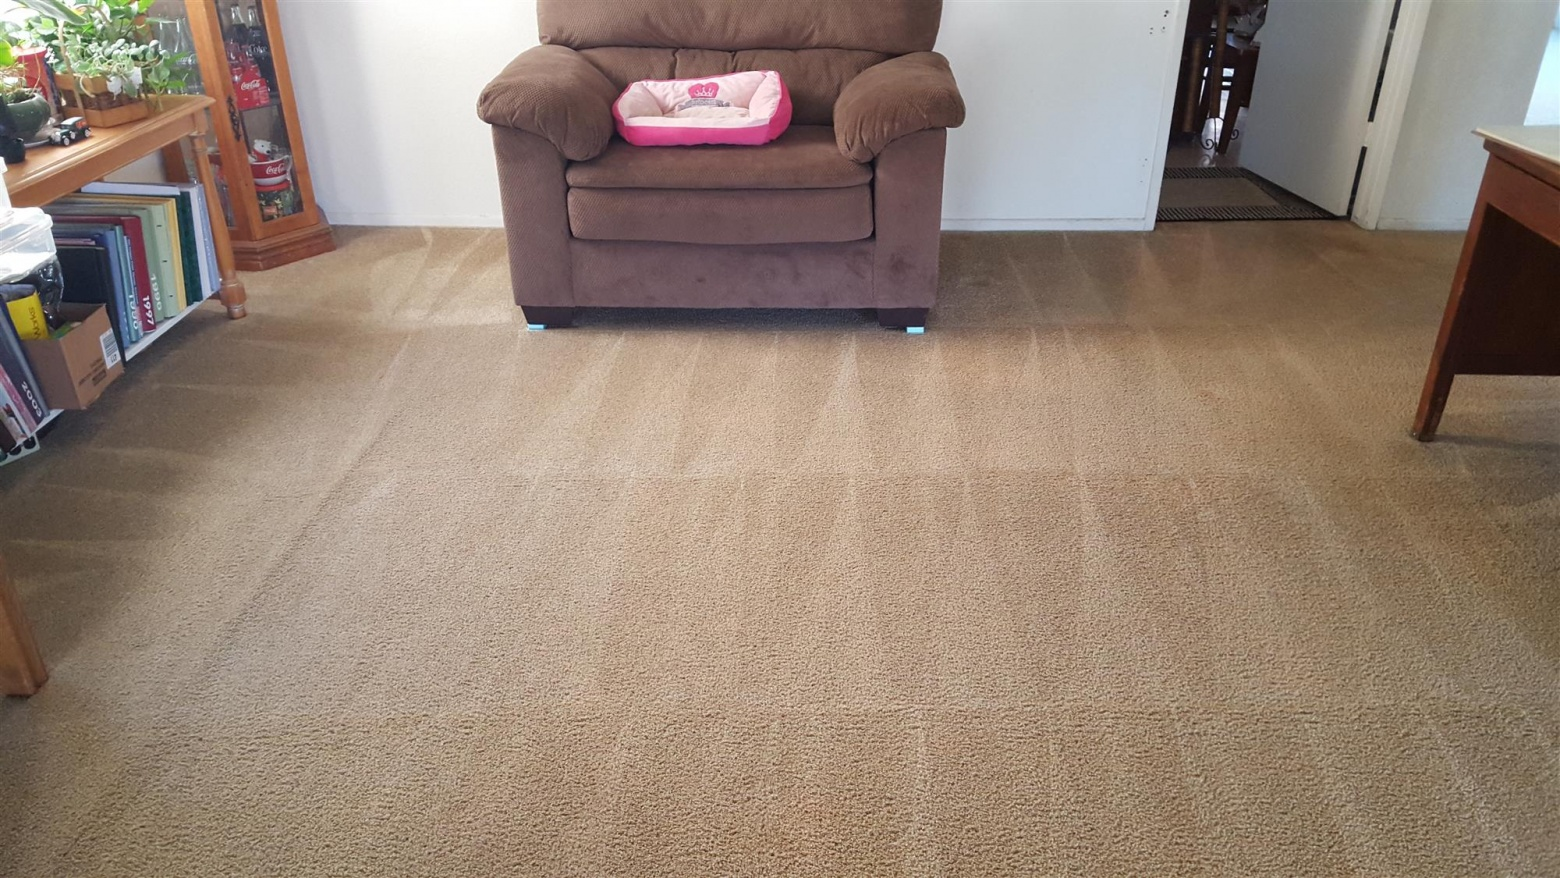 Rug Cleaning In Huntington Beach Area